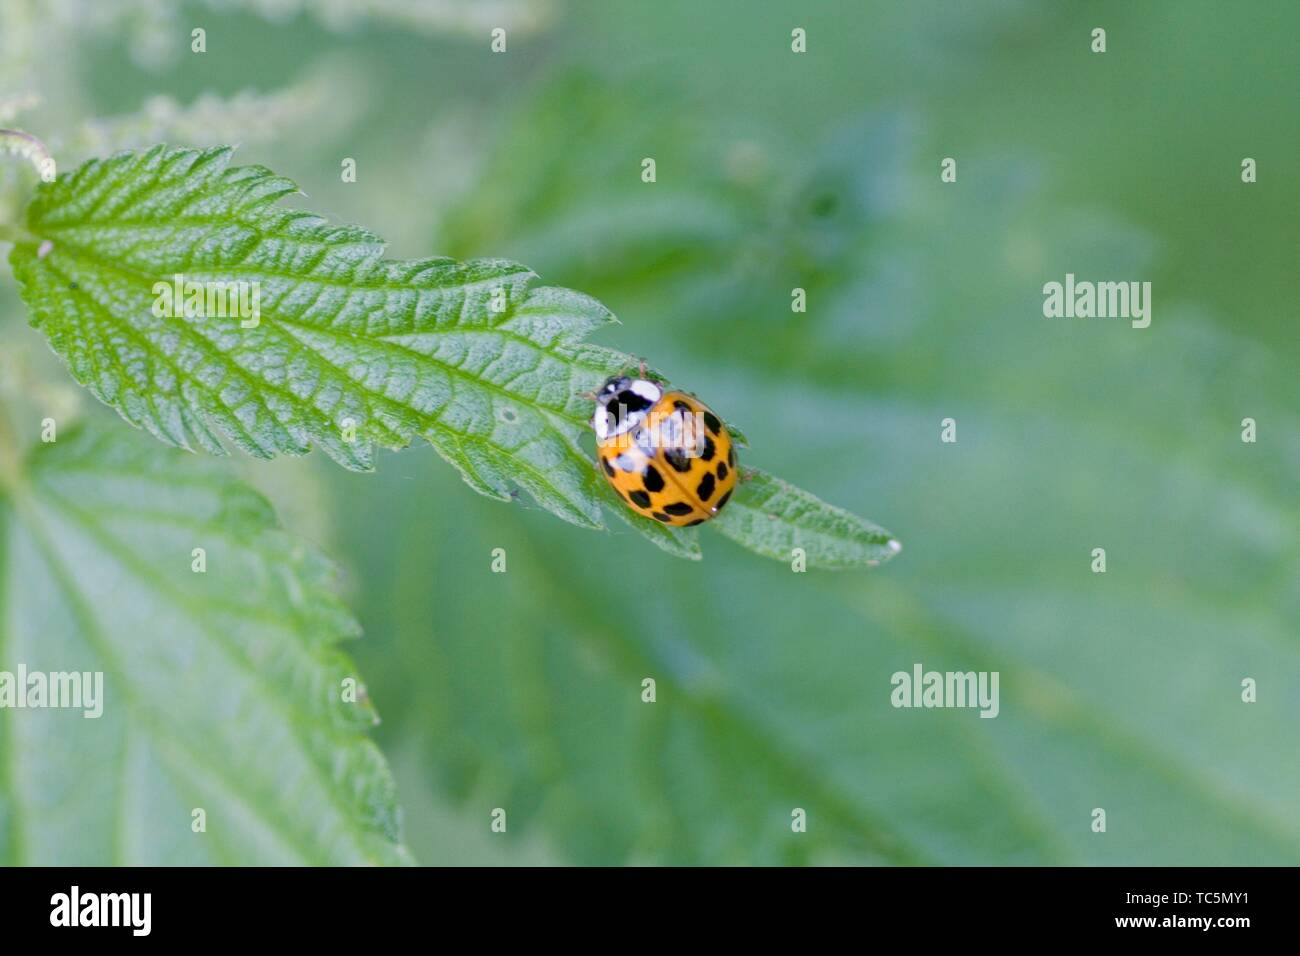 Harlequin Ladybird pupae, Harmonia axyridis, large ladybird which have multiple colora variations with dots 0-22. Most common form is red or orange - Stock Image